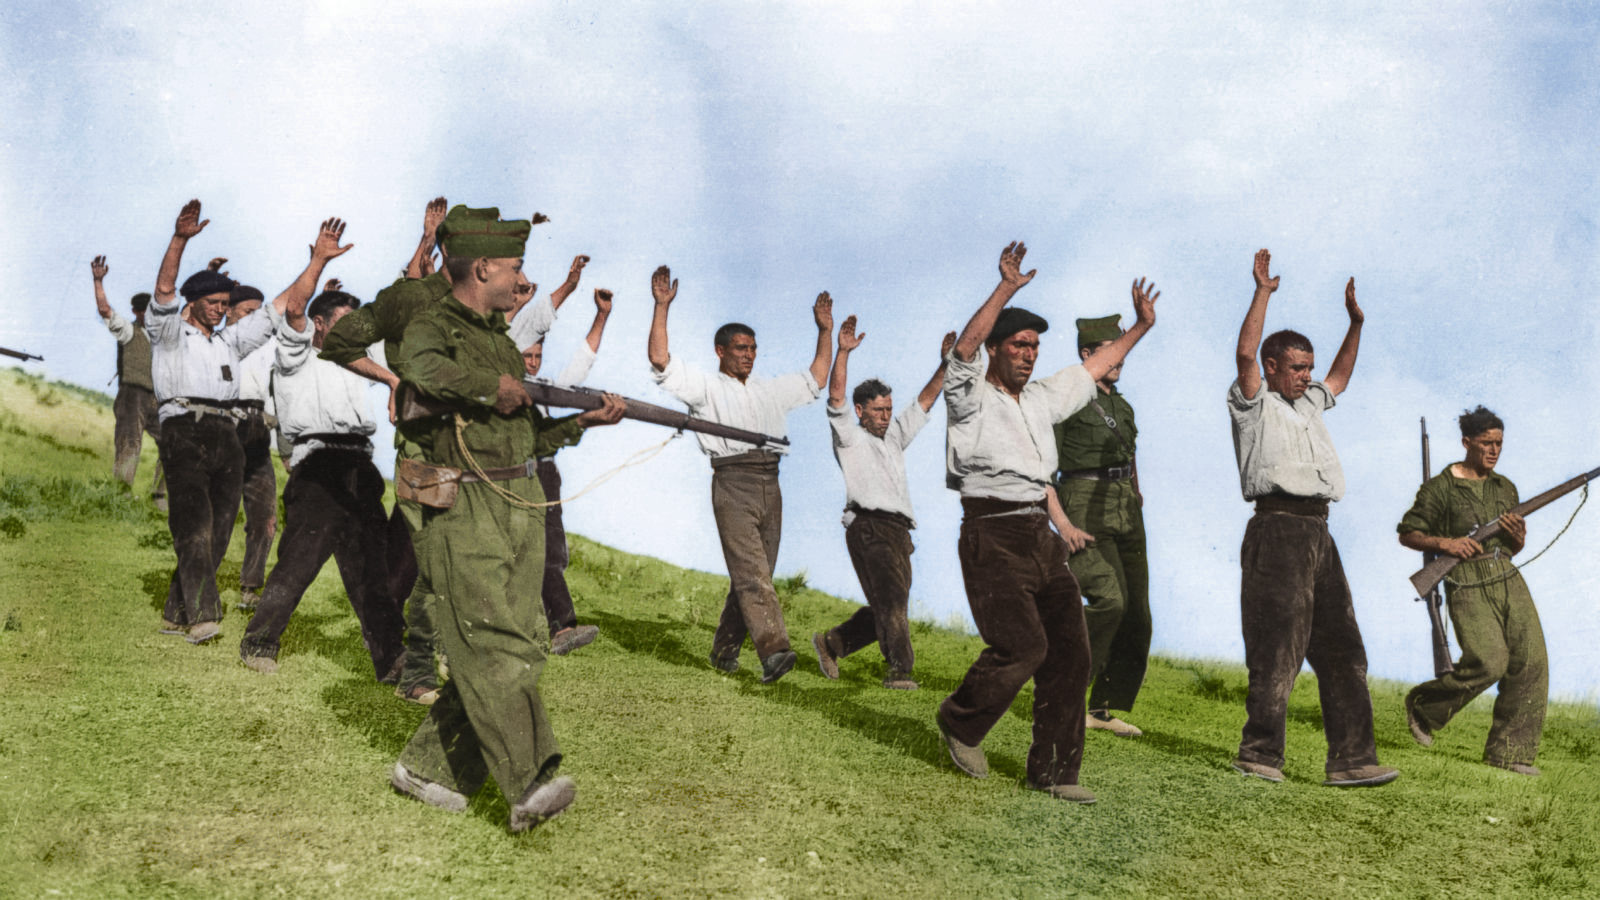 Spanish Civil War - Arrests at Guadarrama